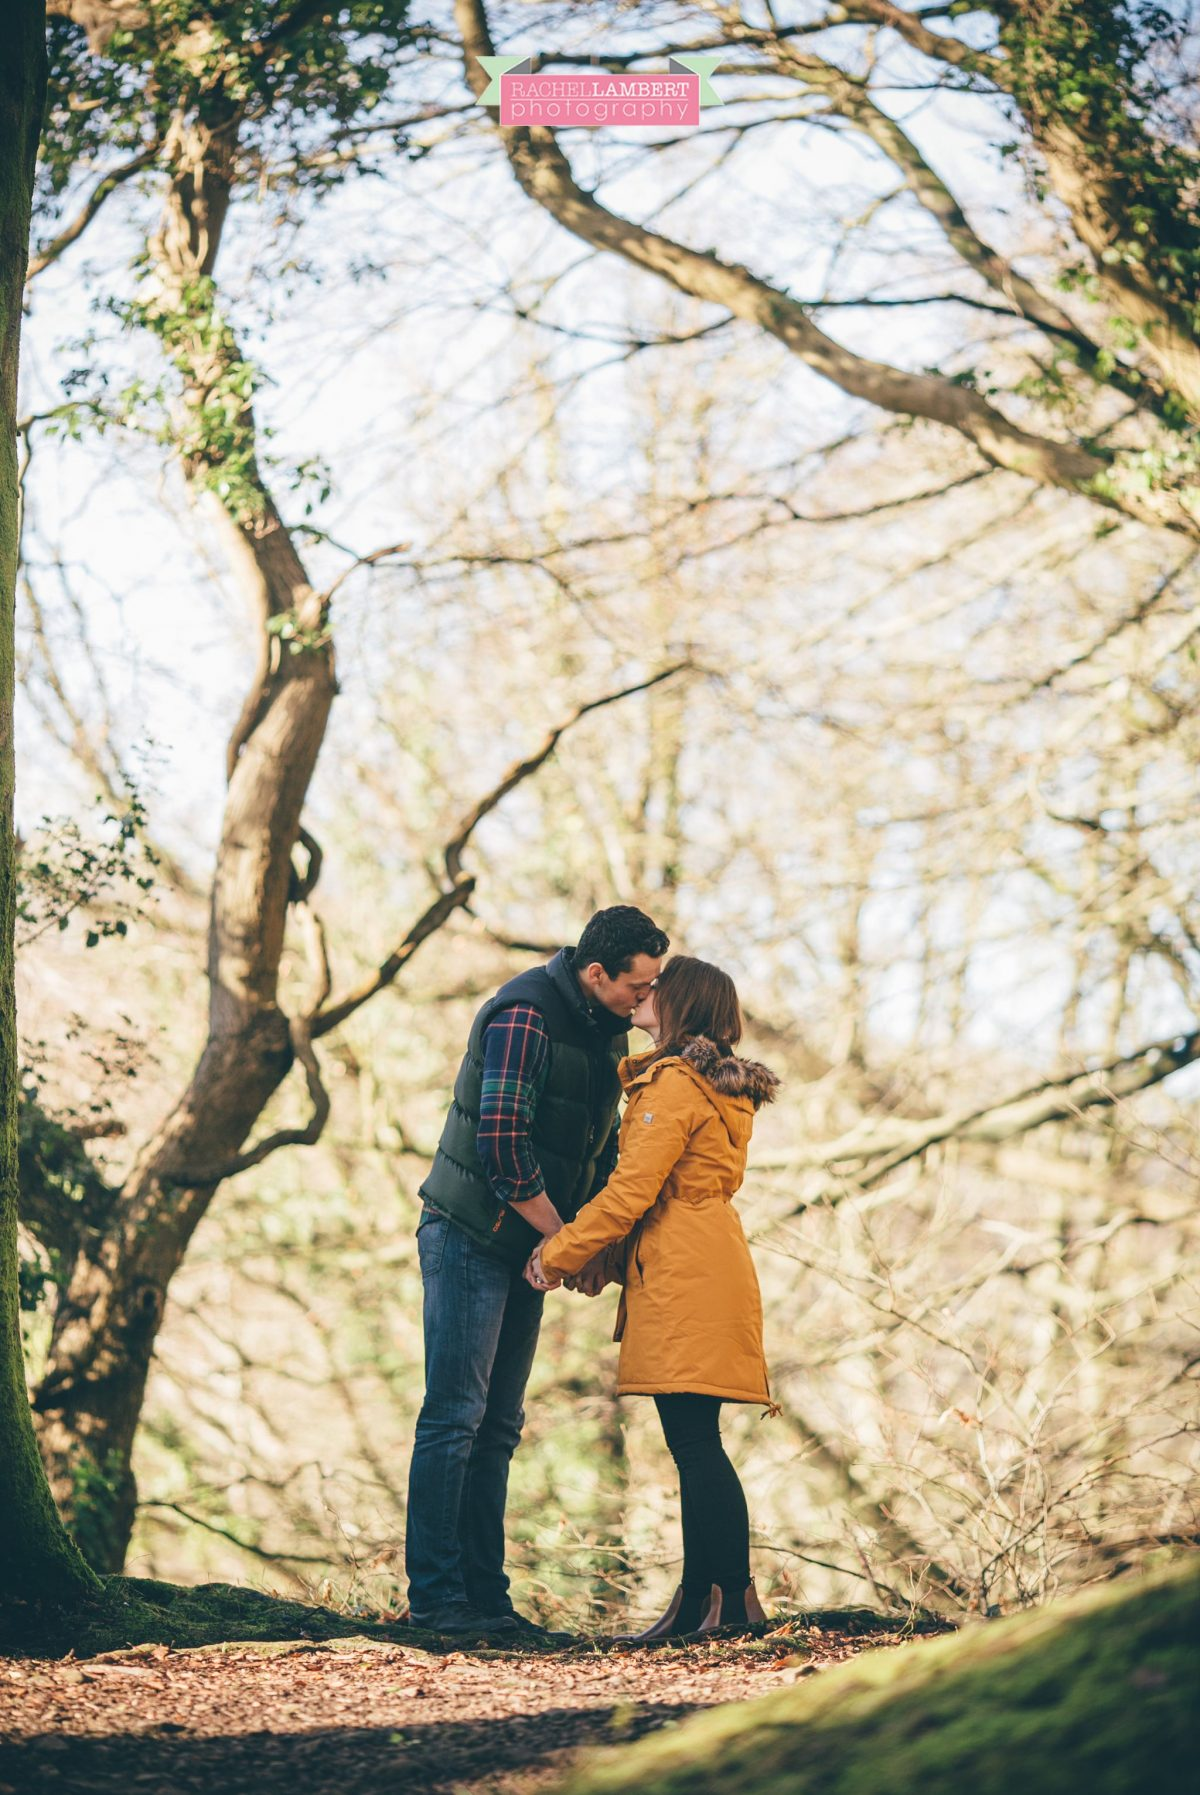 cardiff_welsh_wedding_photographer_rachel_lambert_photography_claire_chris_engagement_castell_coch_ 20